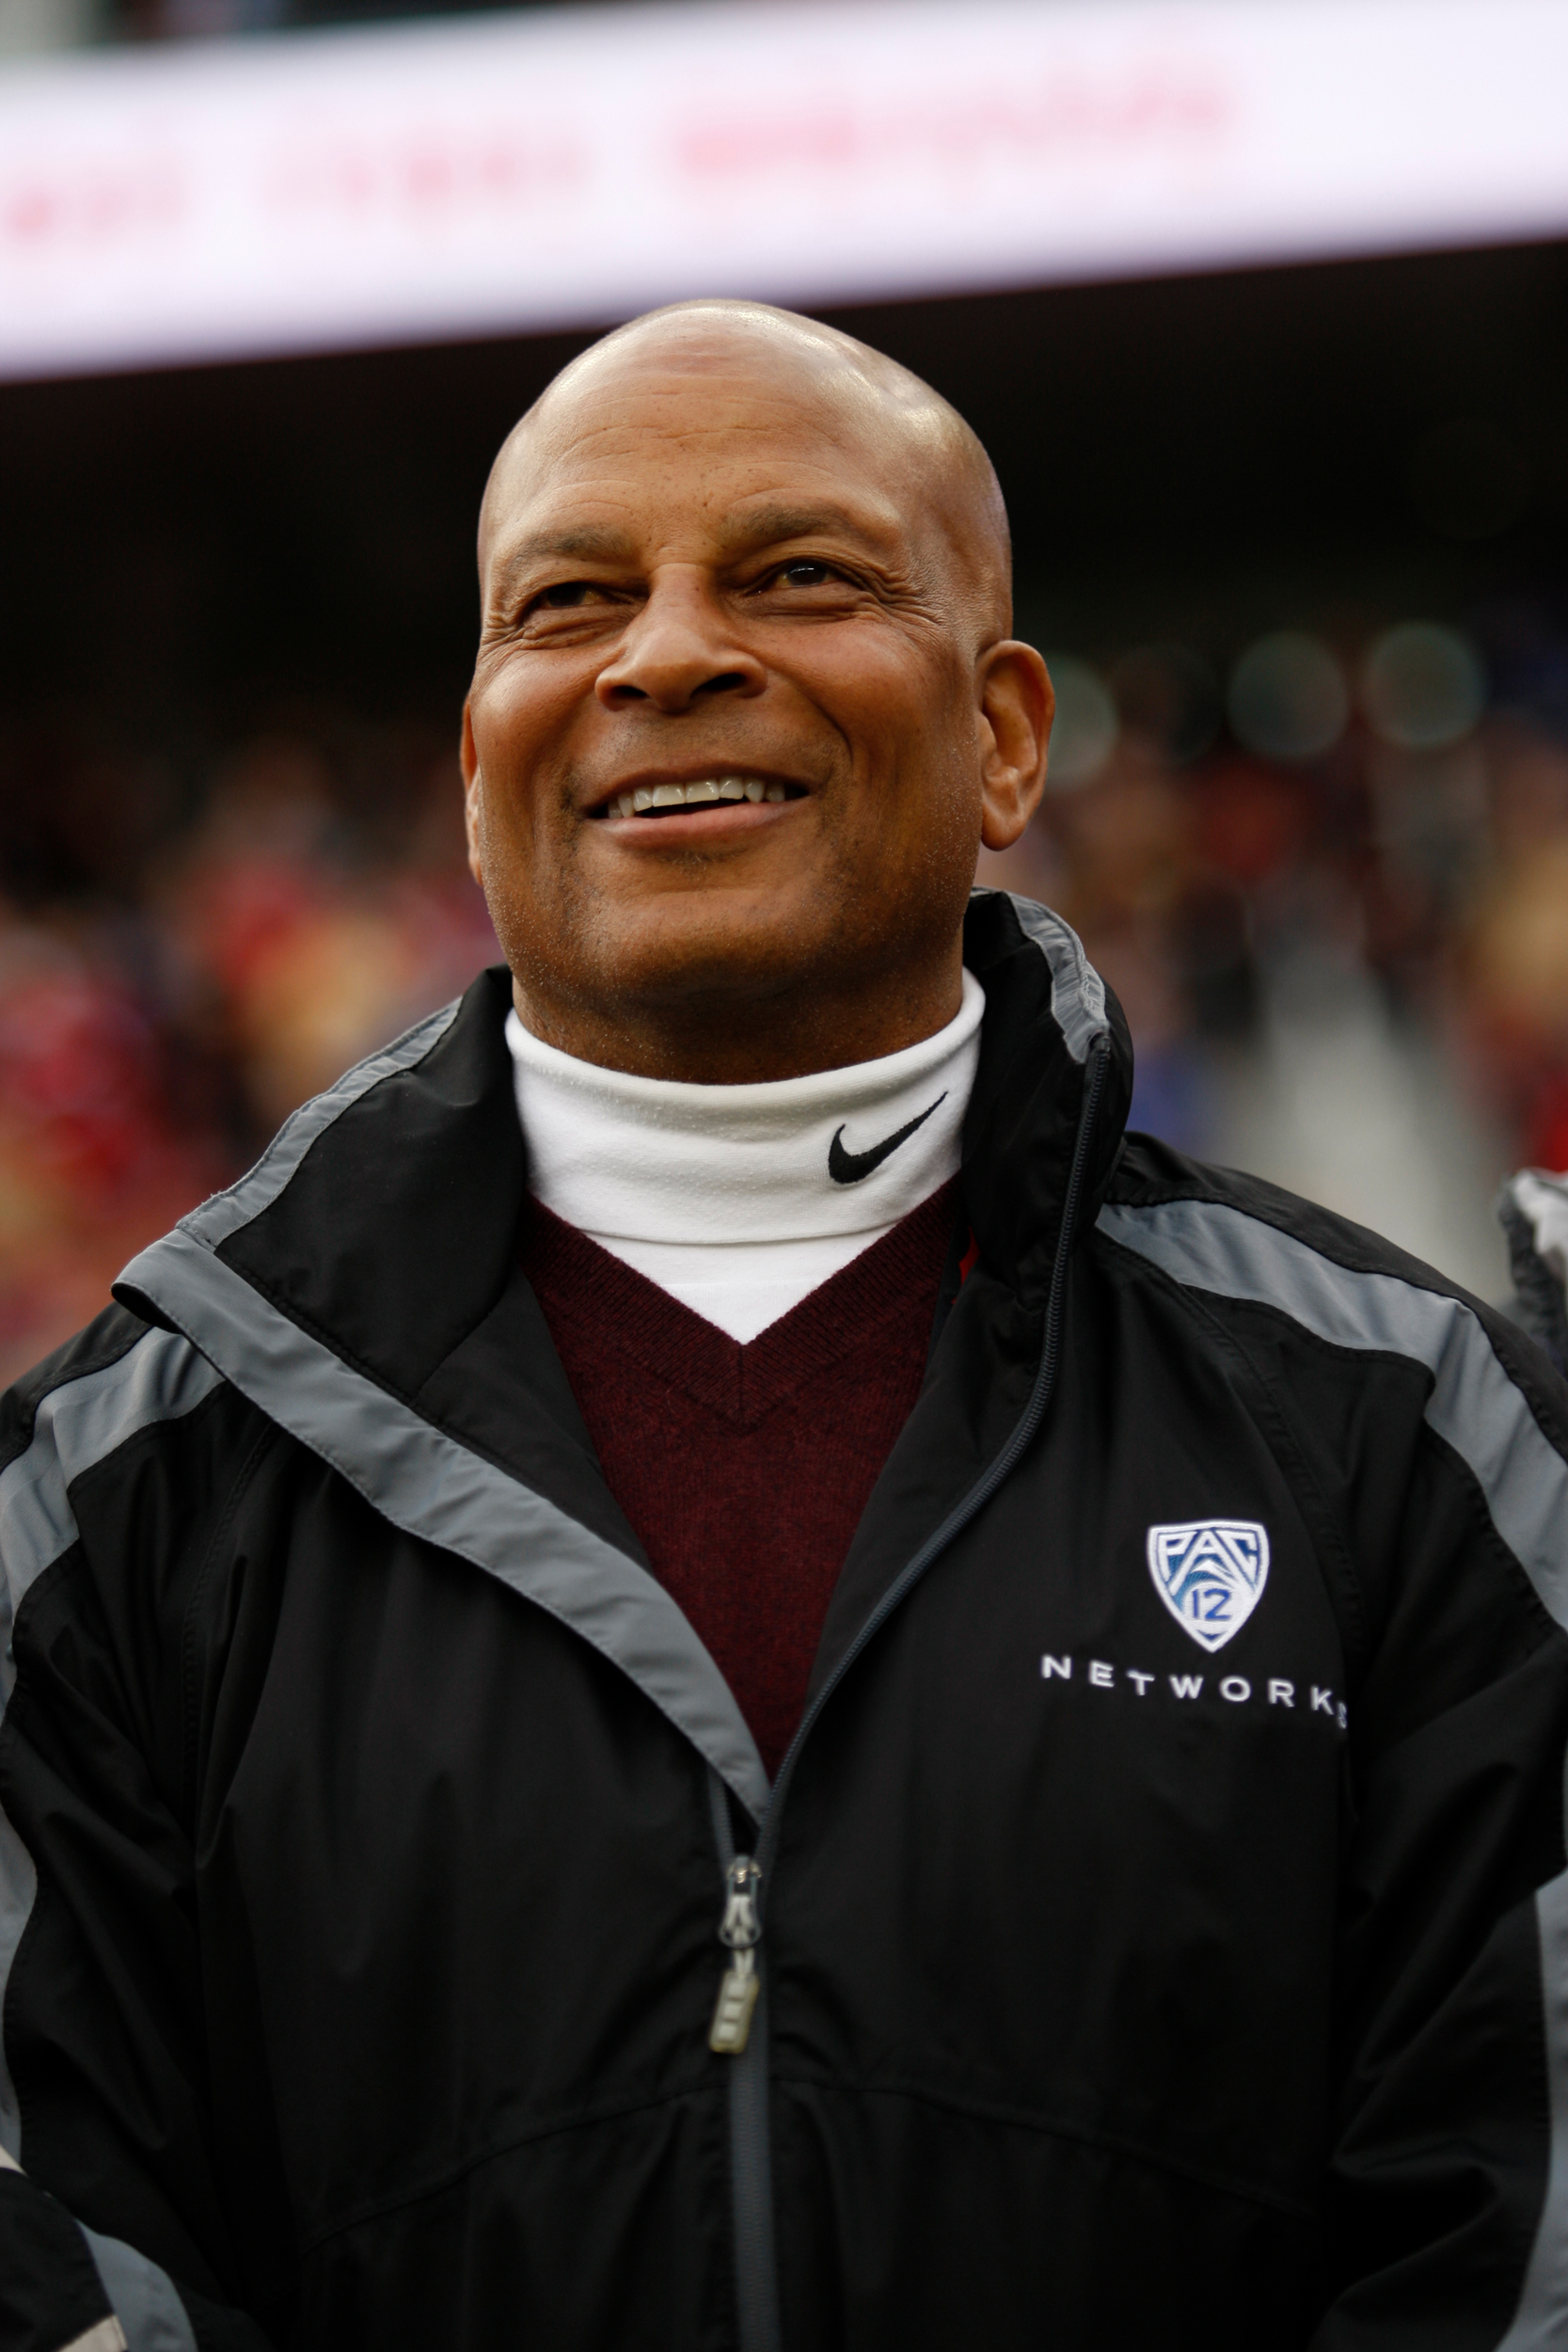 Ronnie Lott stands on the sideline prior to the game between the San Francisco 49ers and the Cincinnati Bengals at Levi Stadium on December 20, 2015 in Santa Clara, California.